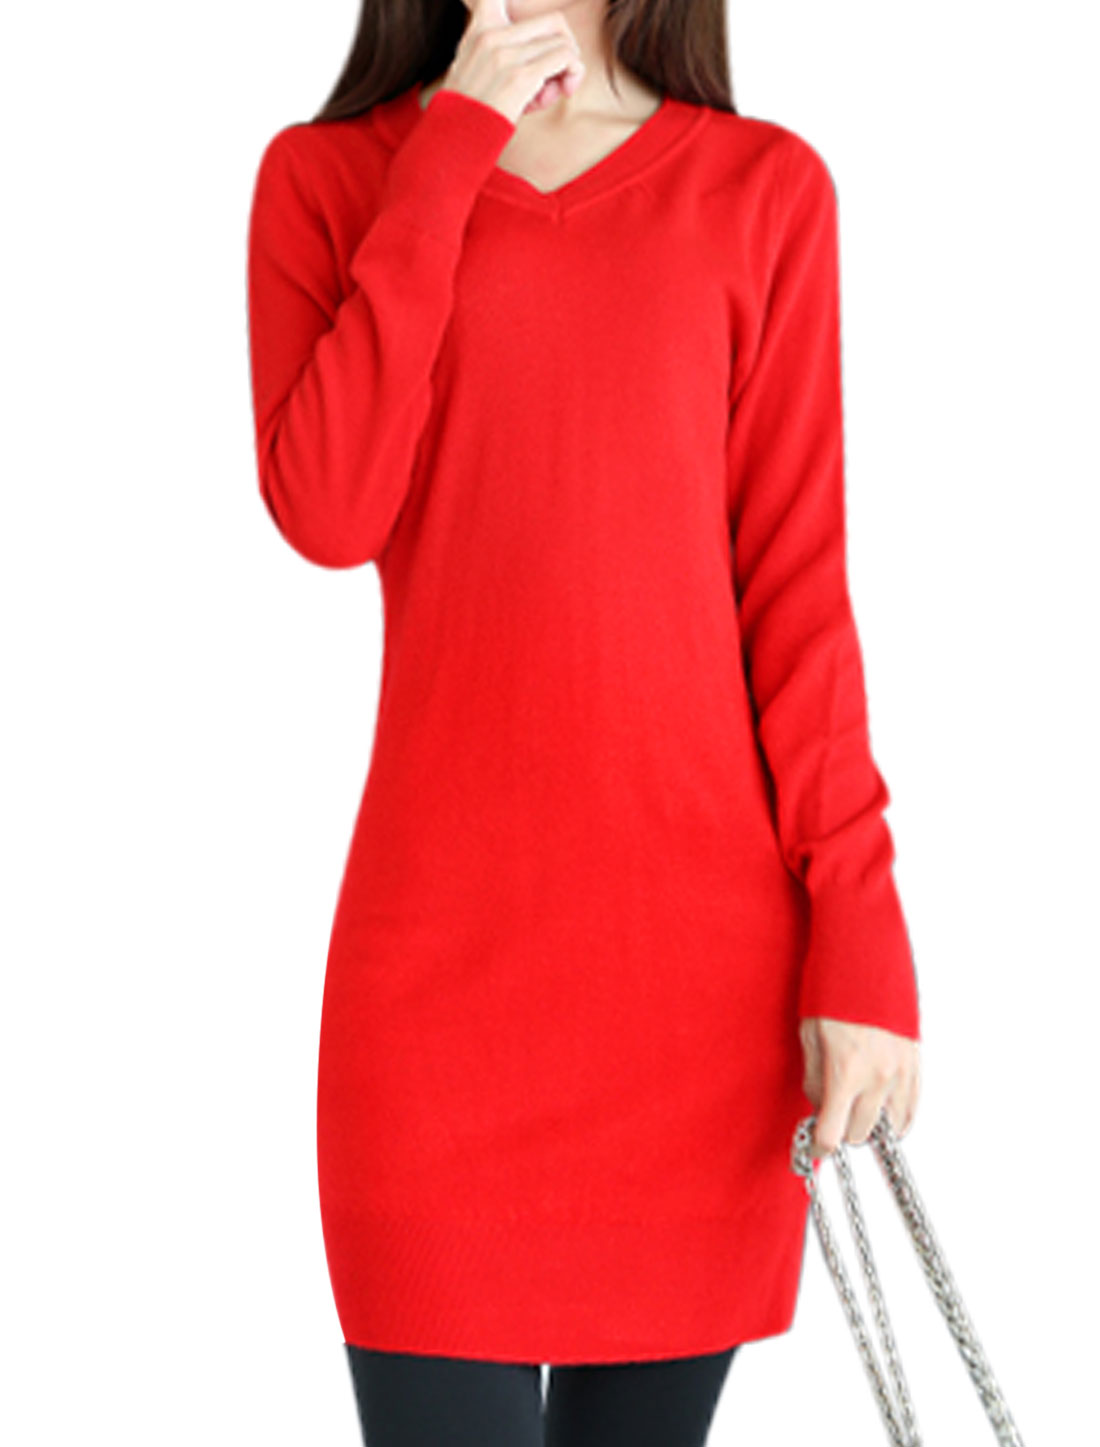 Fashion Design Long Sleeve Slim Fit Red Tunic Knit Shirt for Ladies XS